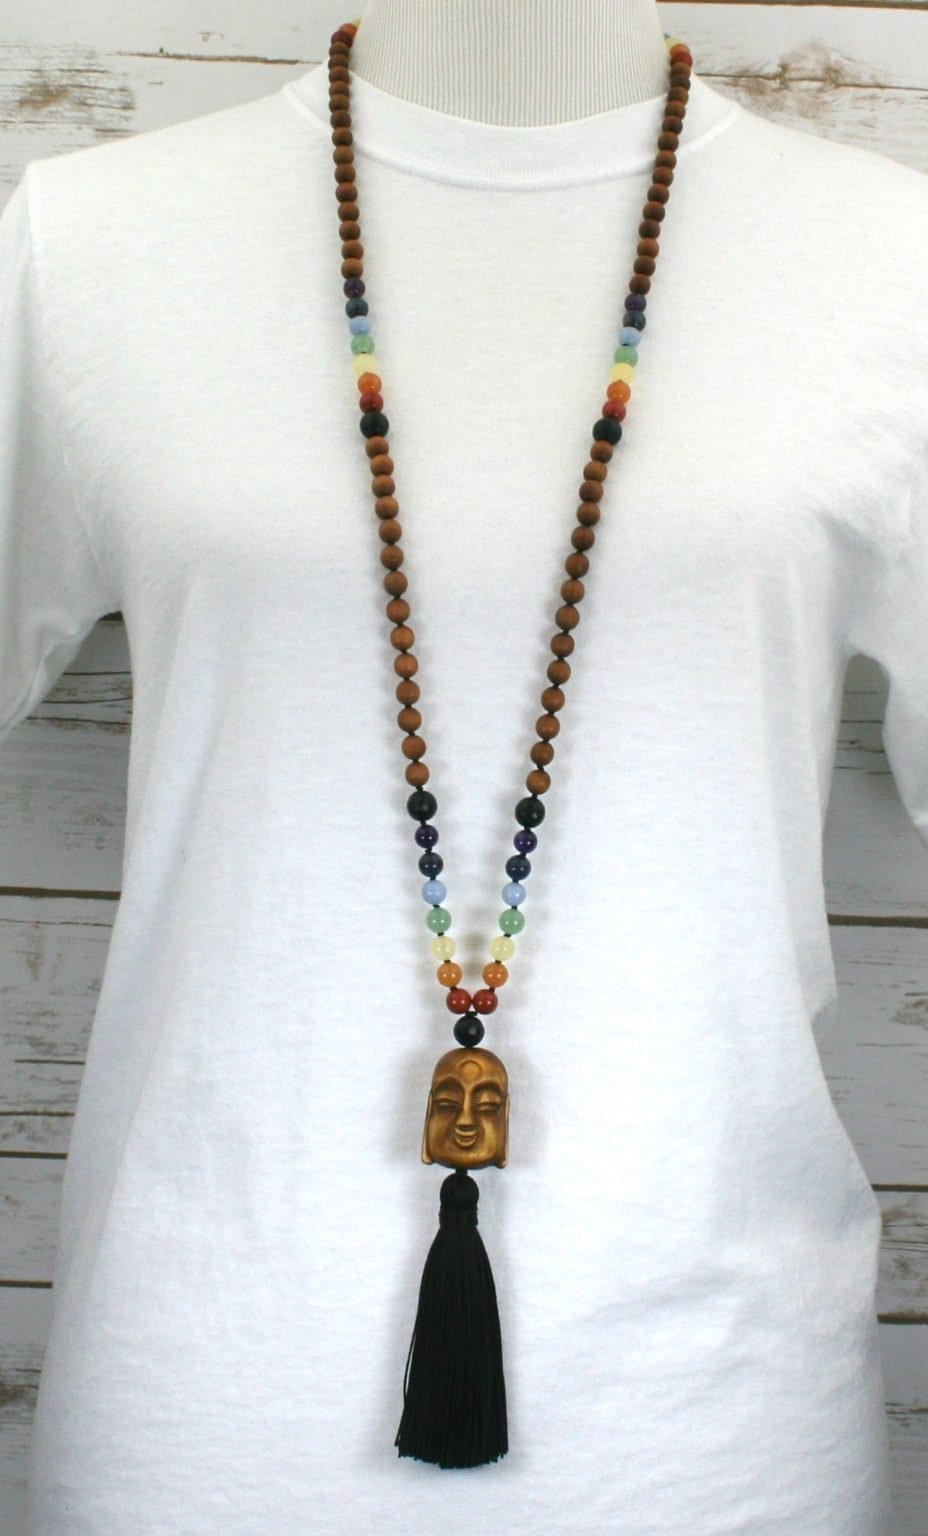 Rainbow and sandalwood Zen mala with a wood Buddha guru bead and black silk tassel